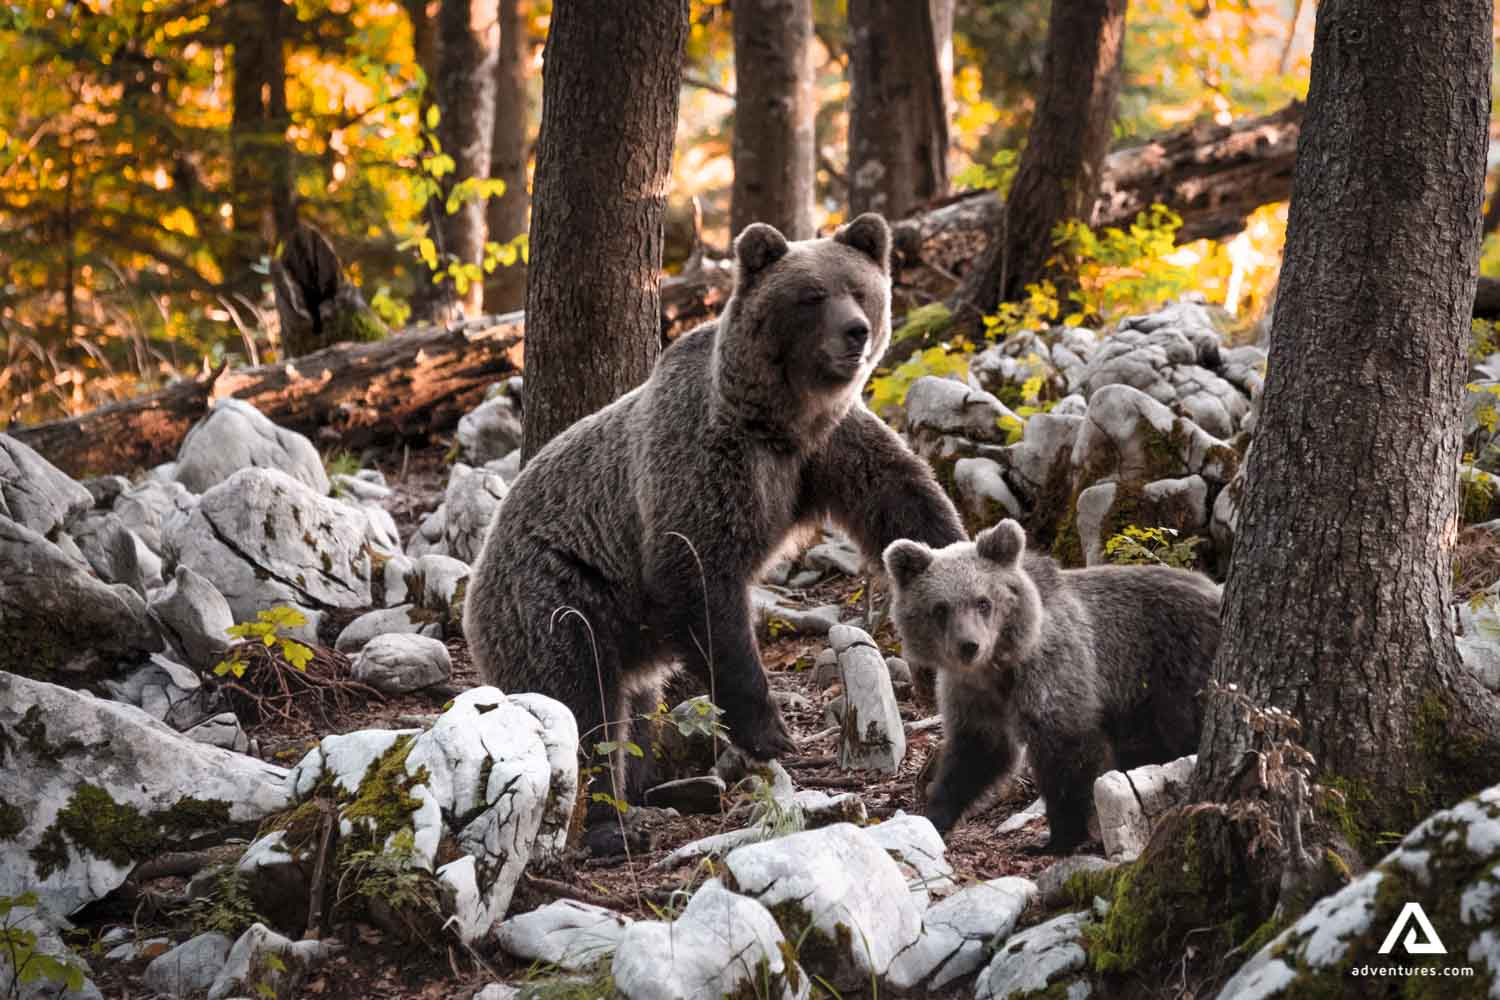 Bear cub with mother in the forest